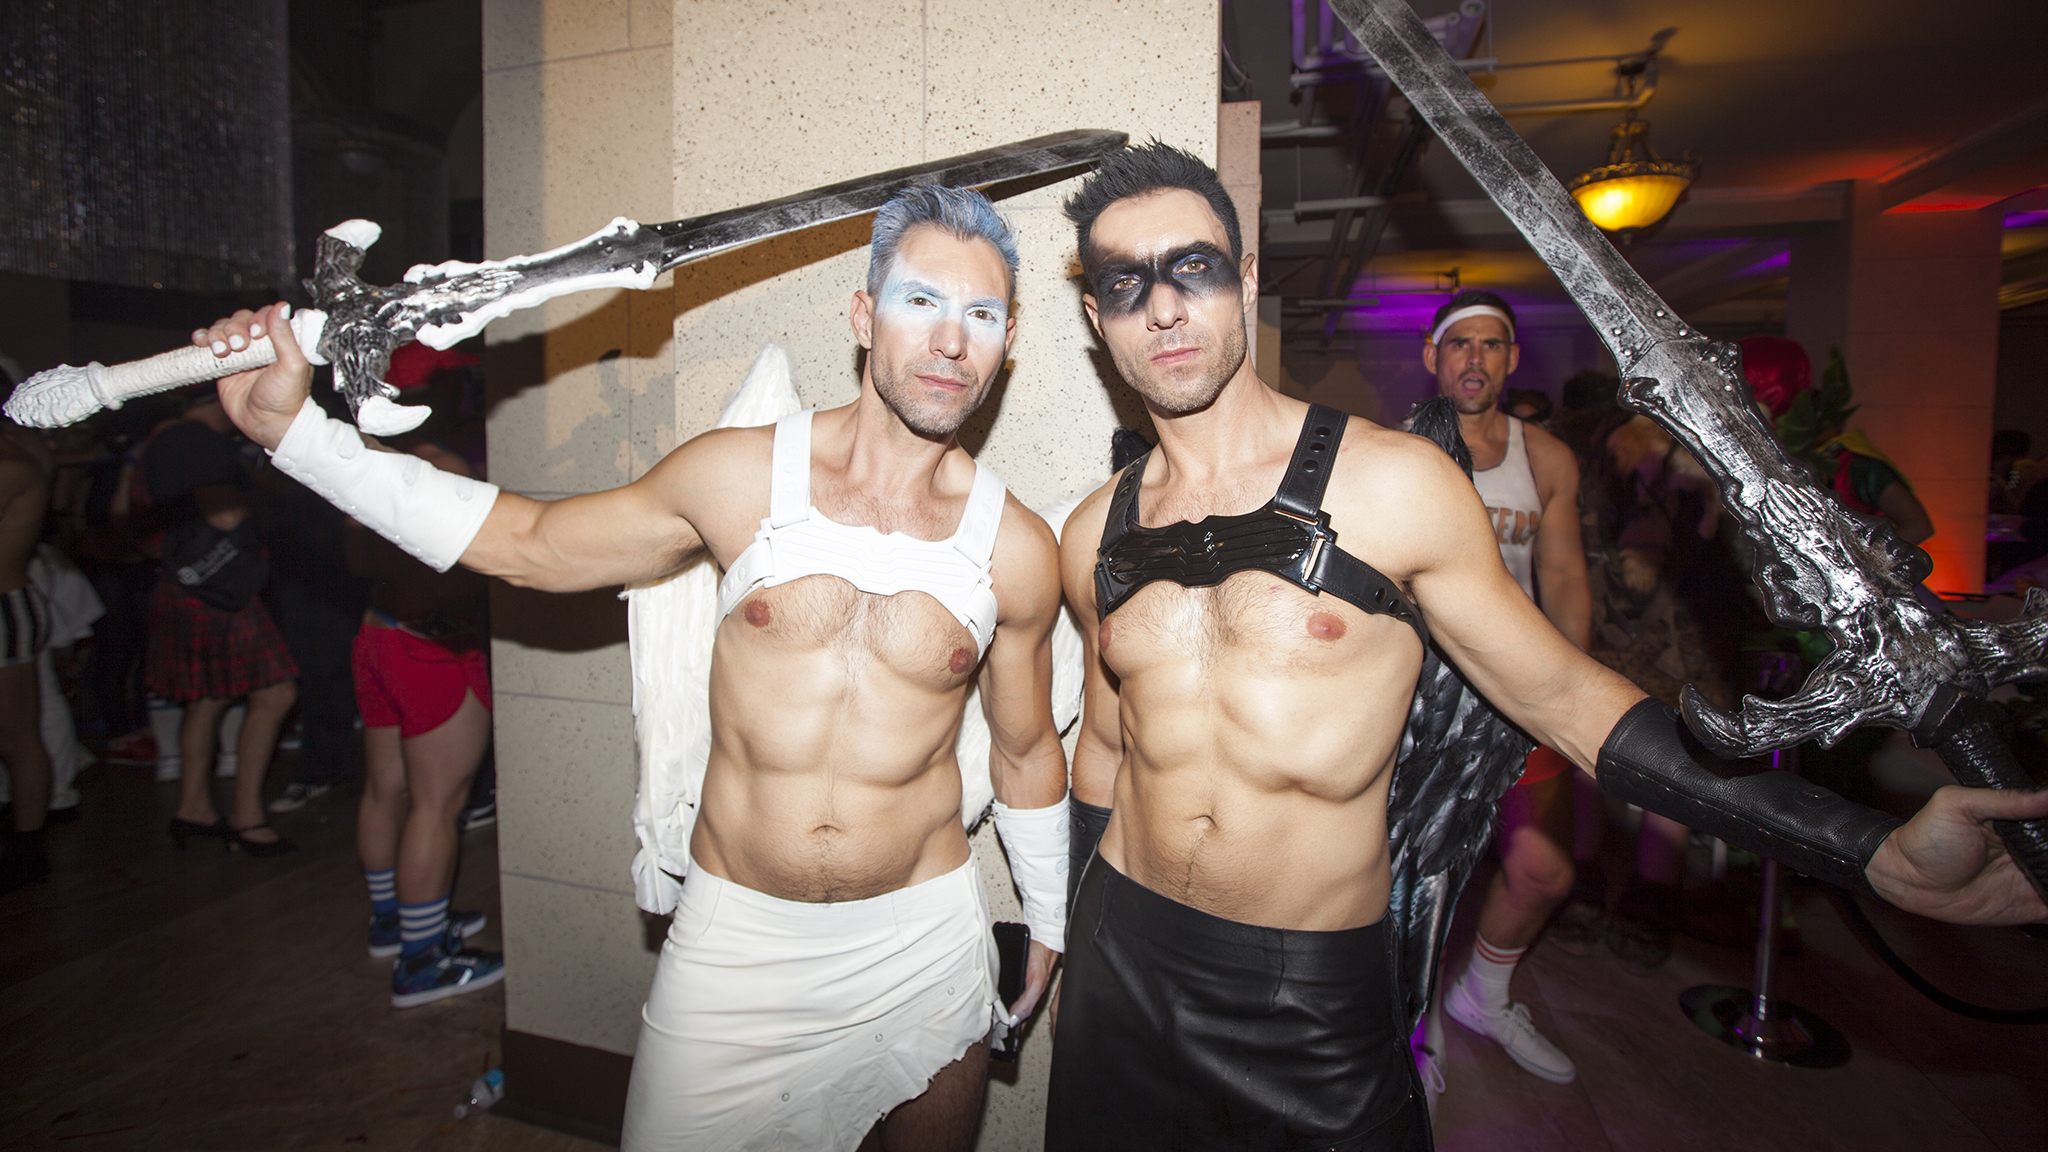 Halloweenie 2015 in photos